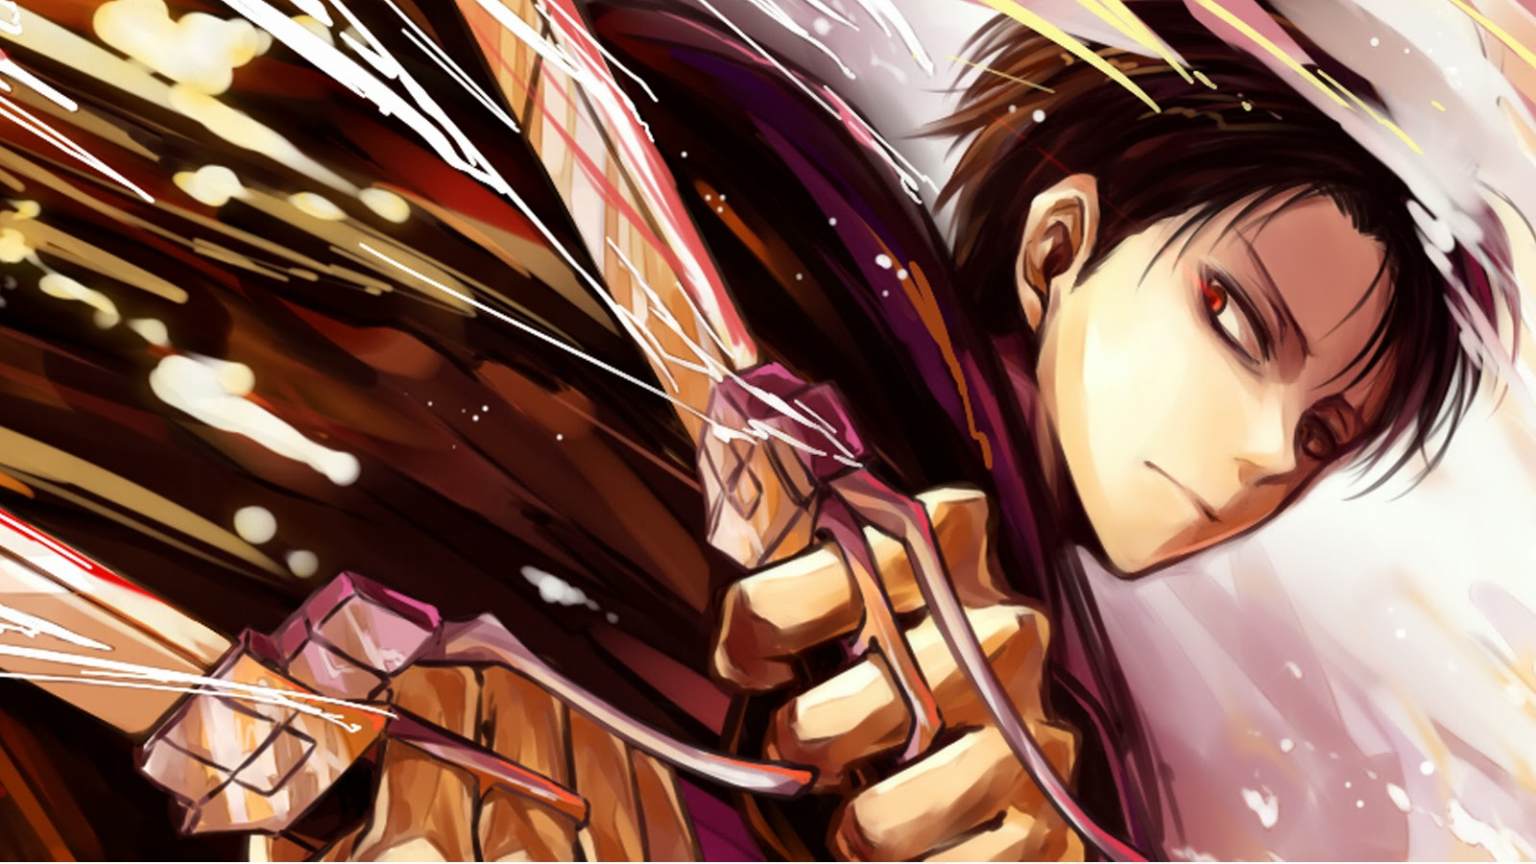 Free Download Attack On Titan Levi Anime Picture 92 Hd 1600x900